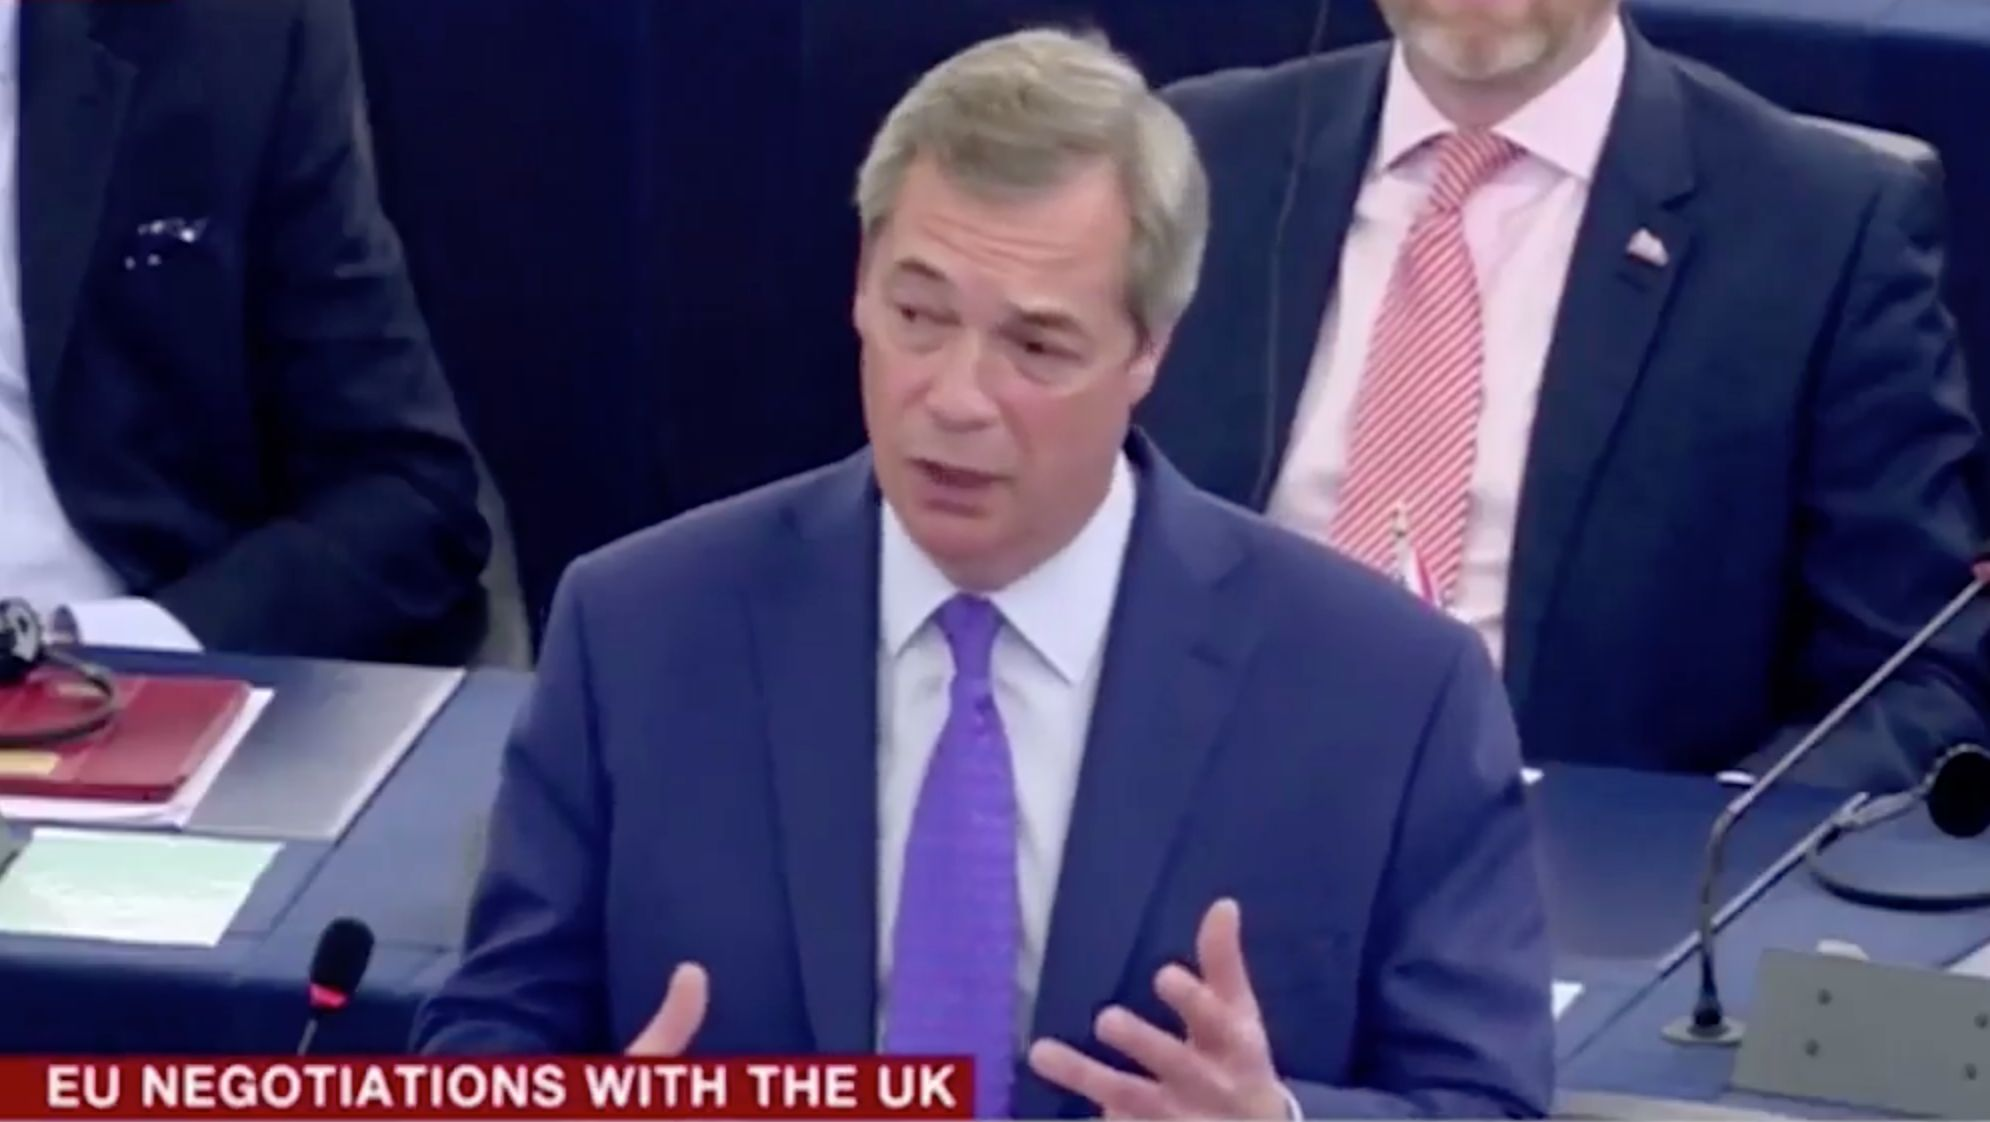 Nigel Farage accused the EU of wanting to 'destroy nation state democracy' by including Gibraltar in...